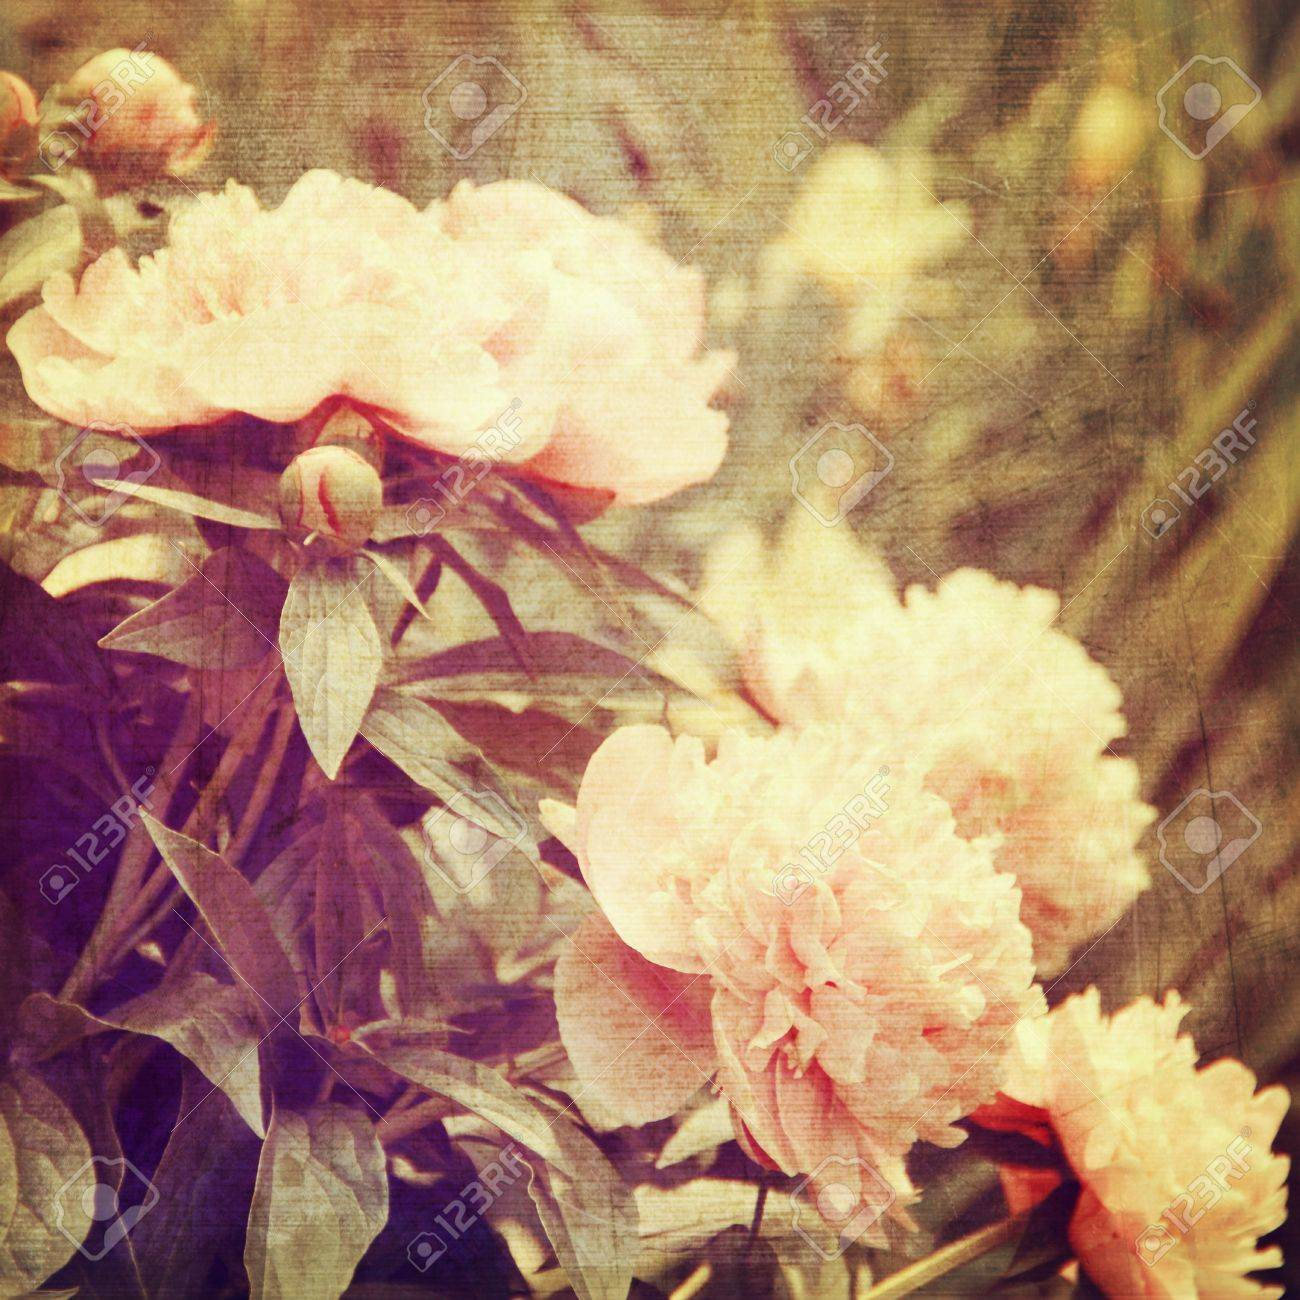 art floral vintage background with white peonies Stock Photo - 21169798